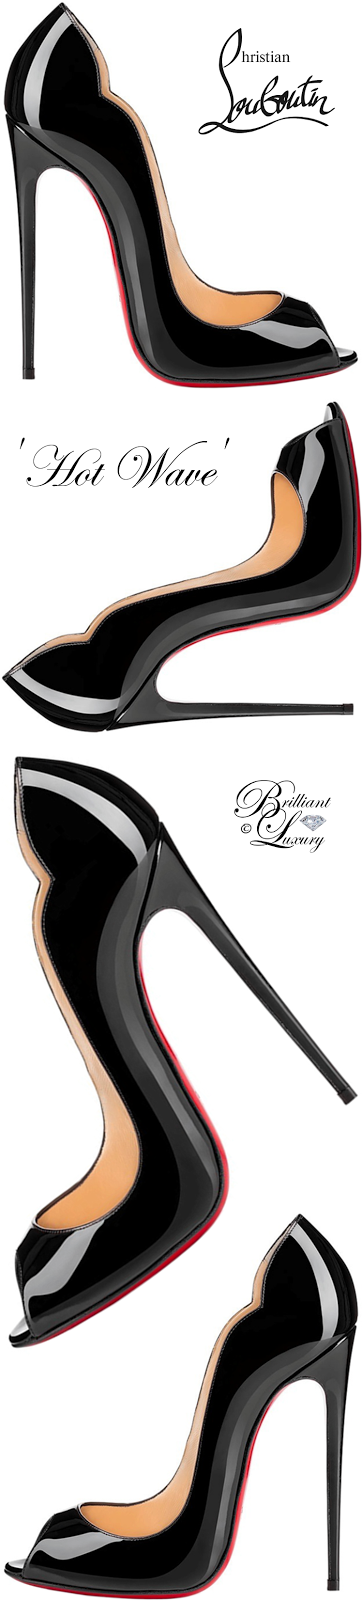 Brilliant Luxury ♦ Christian Louboutin Hot Wave Peep-Toe Red Sole Pump #black